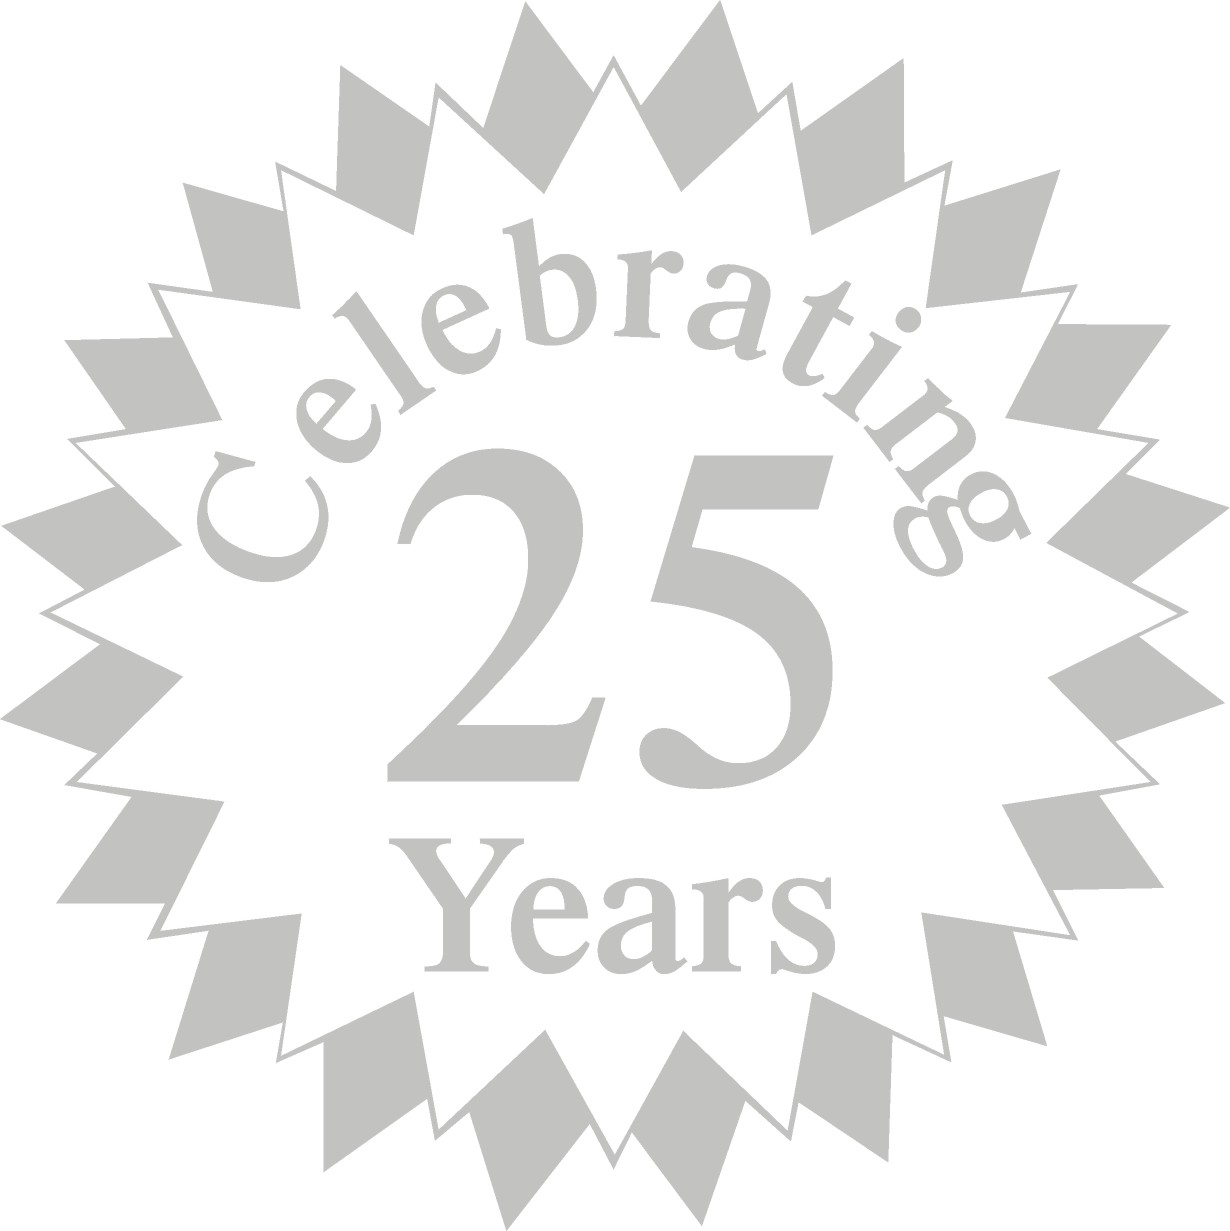 25 year anniversary clipart image royalty free library Free 25th Anniversary Cliparts, Download Free Clip Art, Free Clip ... image royalty free library